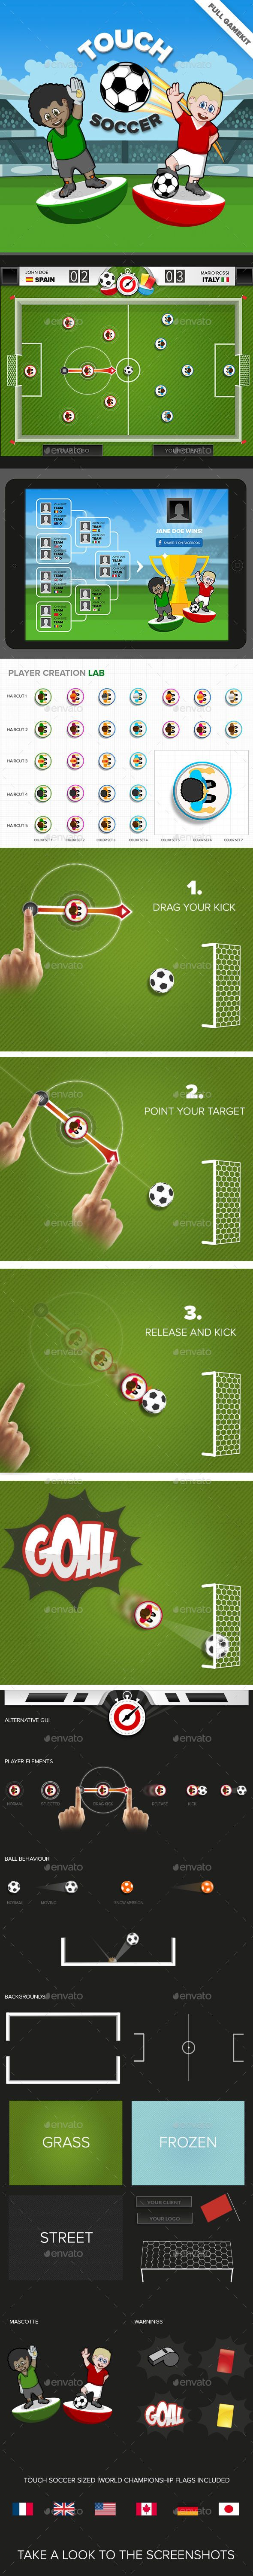 Touch Soccer Game Kit Download here: https://graphicriver.net/item/touch-soccer-game-kit/9034370?ref=KlitVogli